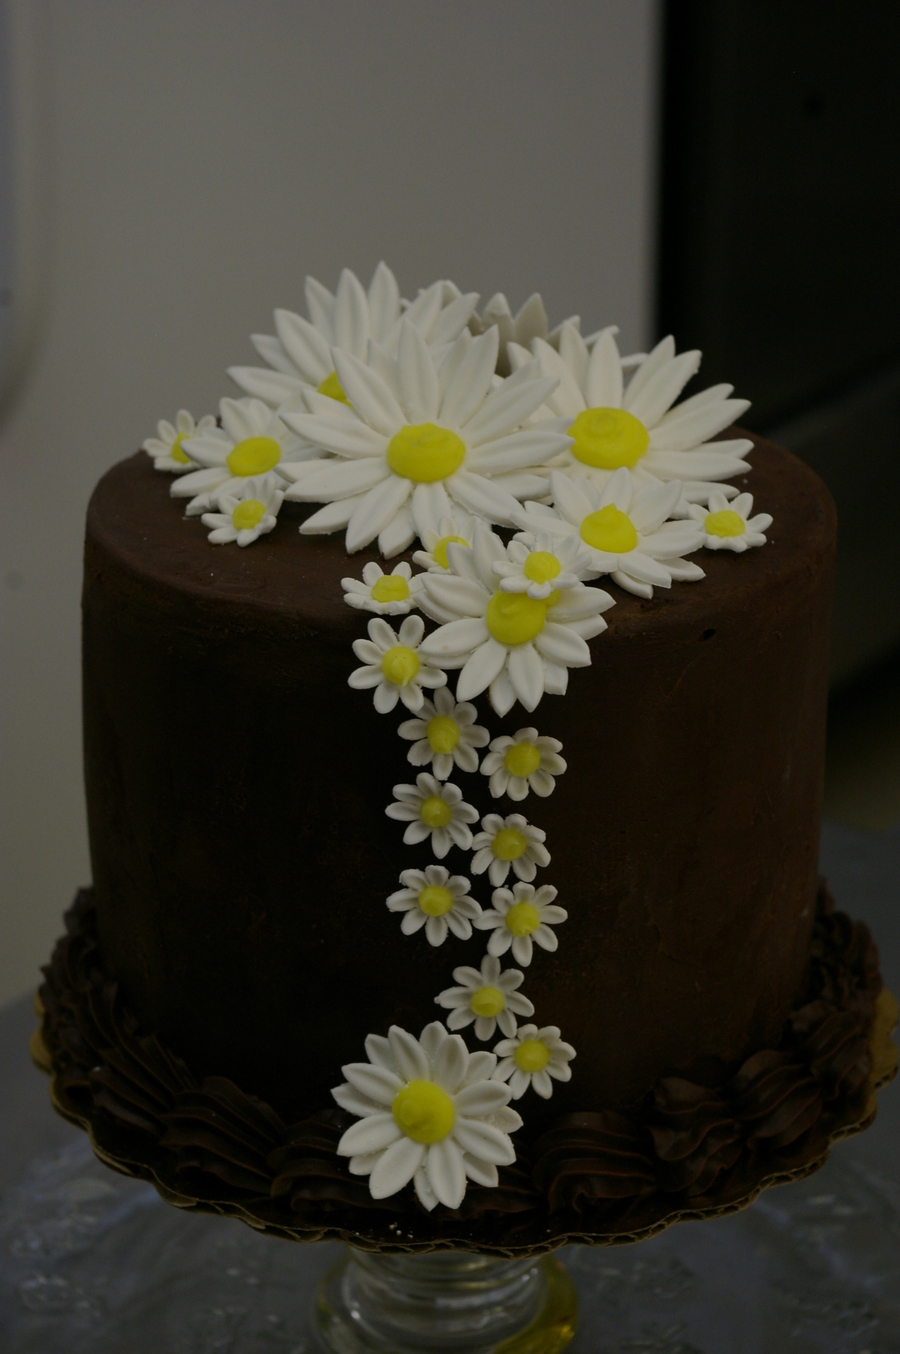 Daisies! on Cake Central